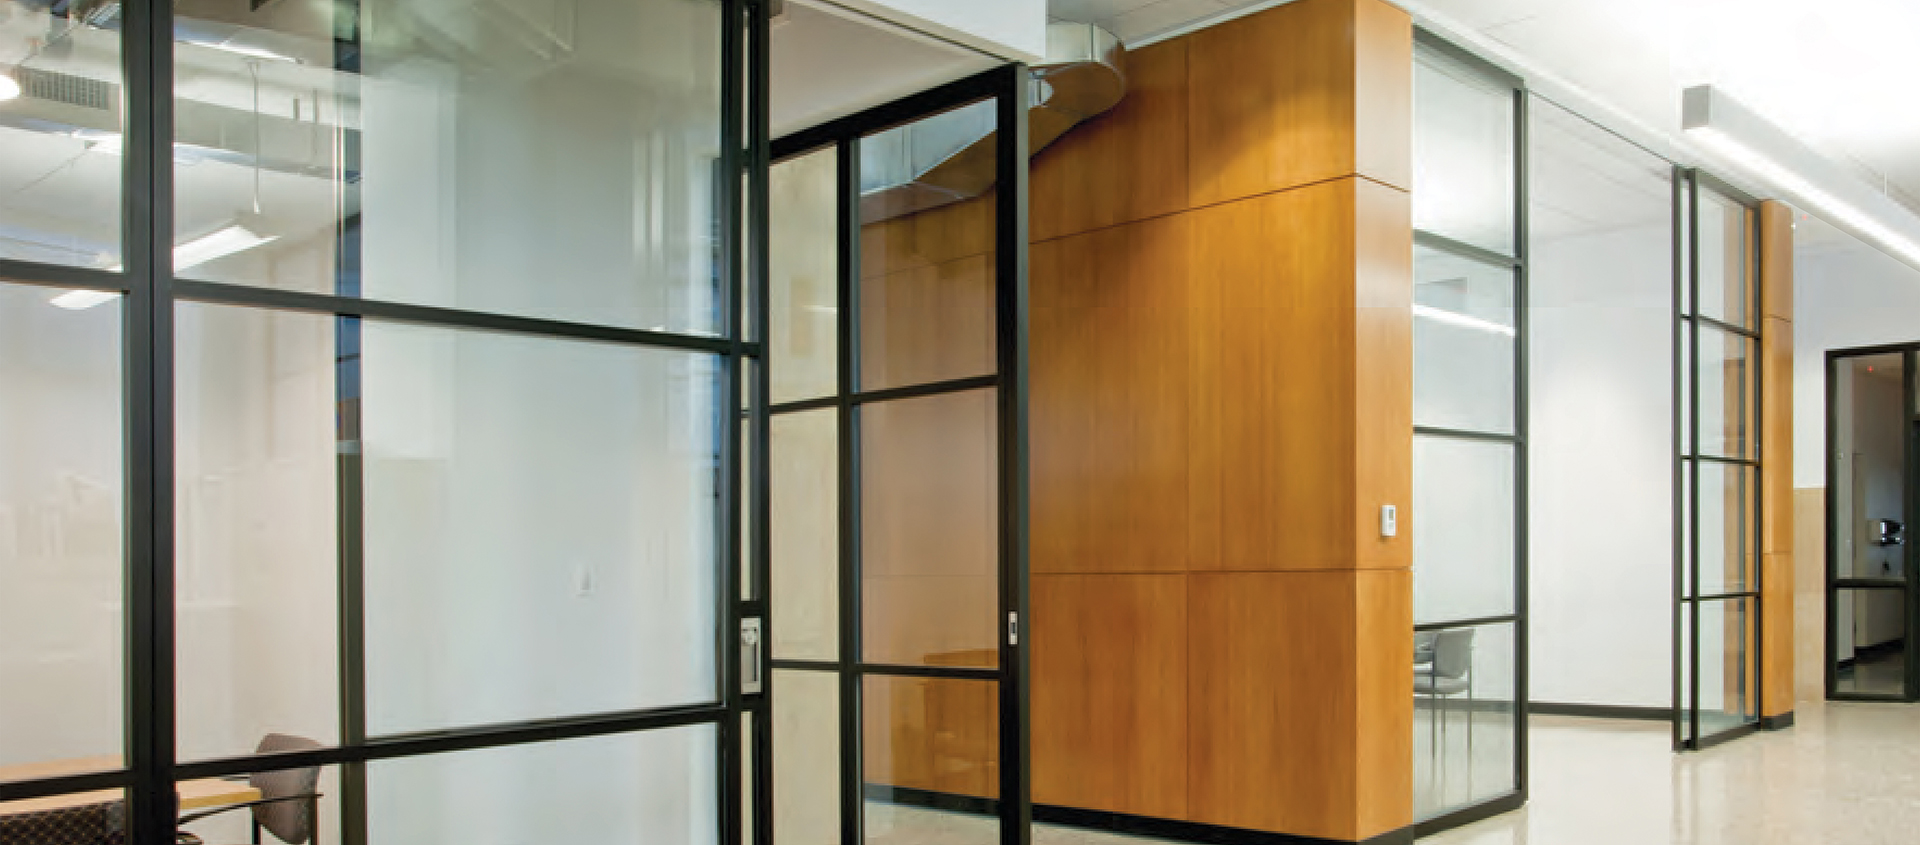 Glass wall systems by stylesglass modernfoldstyles for Sliding glass wall systems